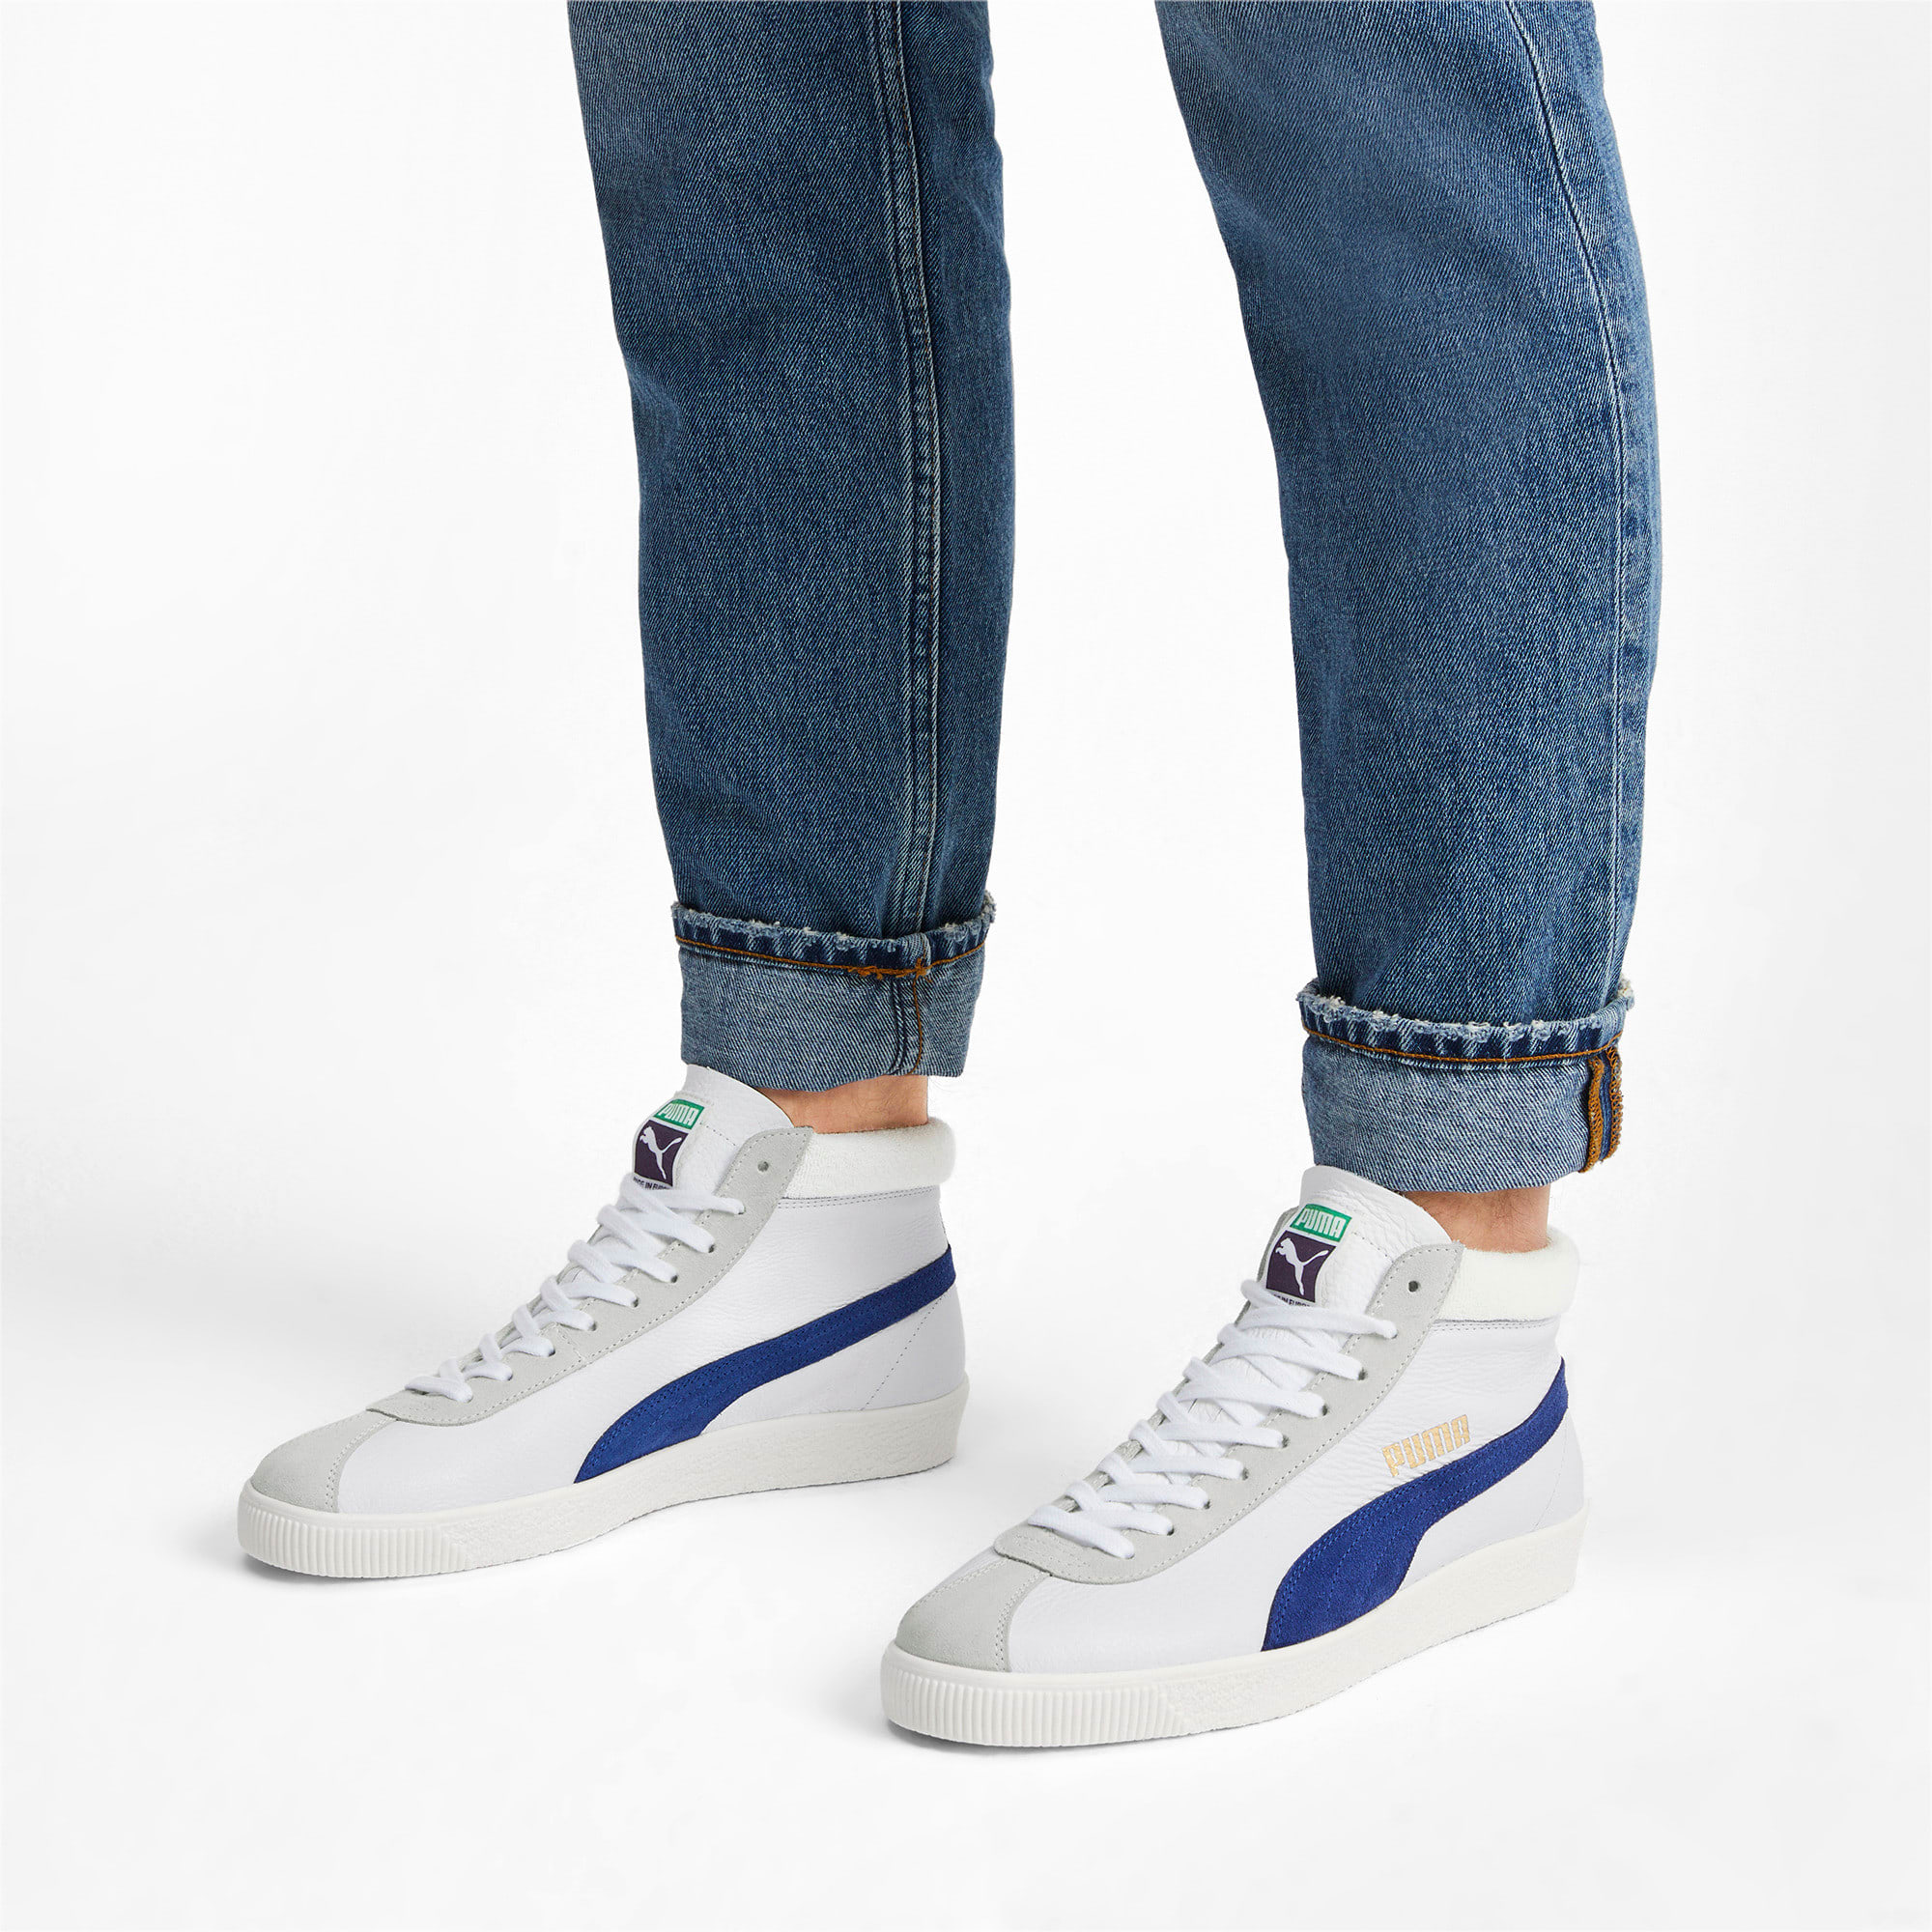 Thumbnail 2 of Basket '68 Mid Trainers, Puma White-Galaxy Blue, medium